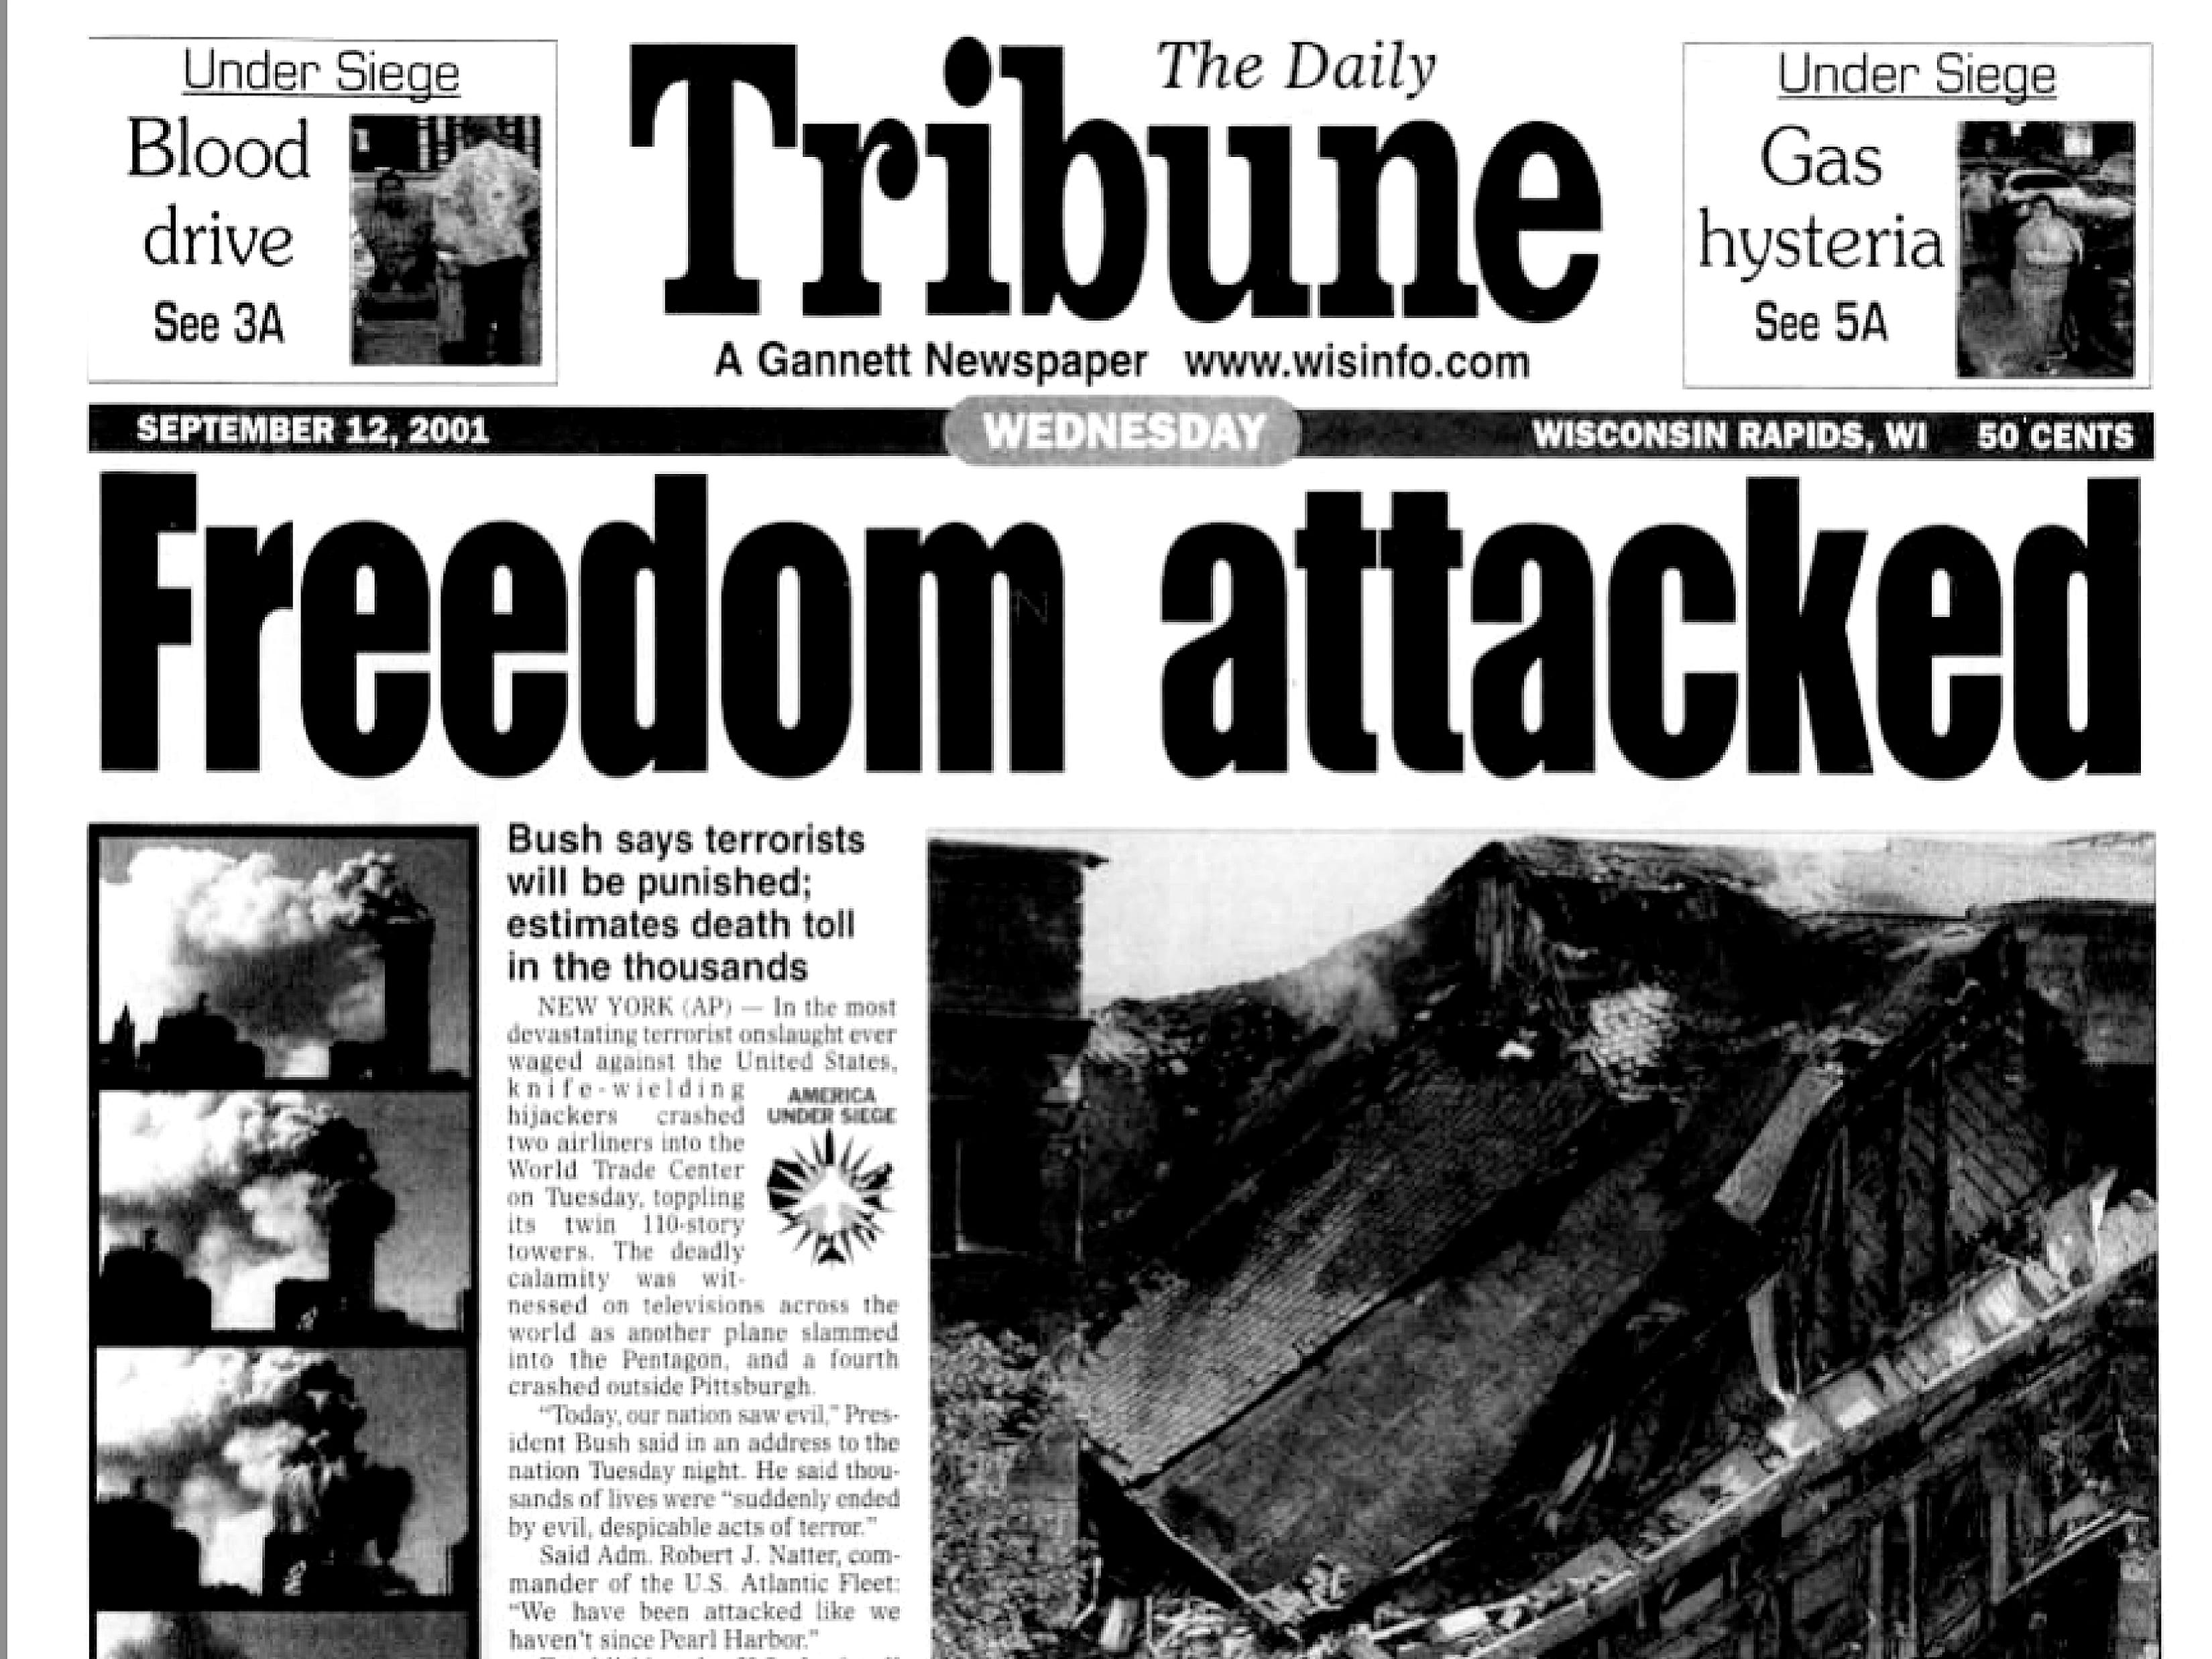 Front page of The Daily Tribune on Sept. 12, 2001